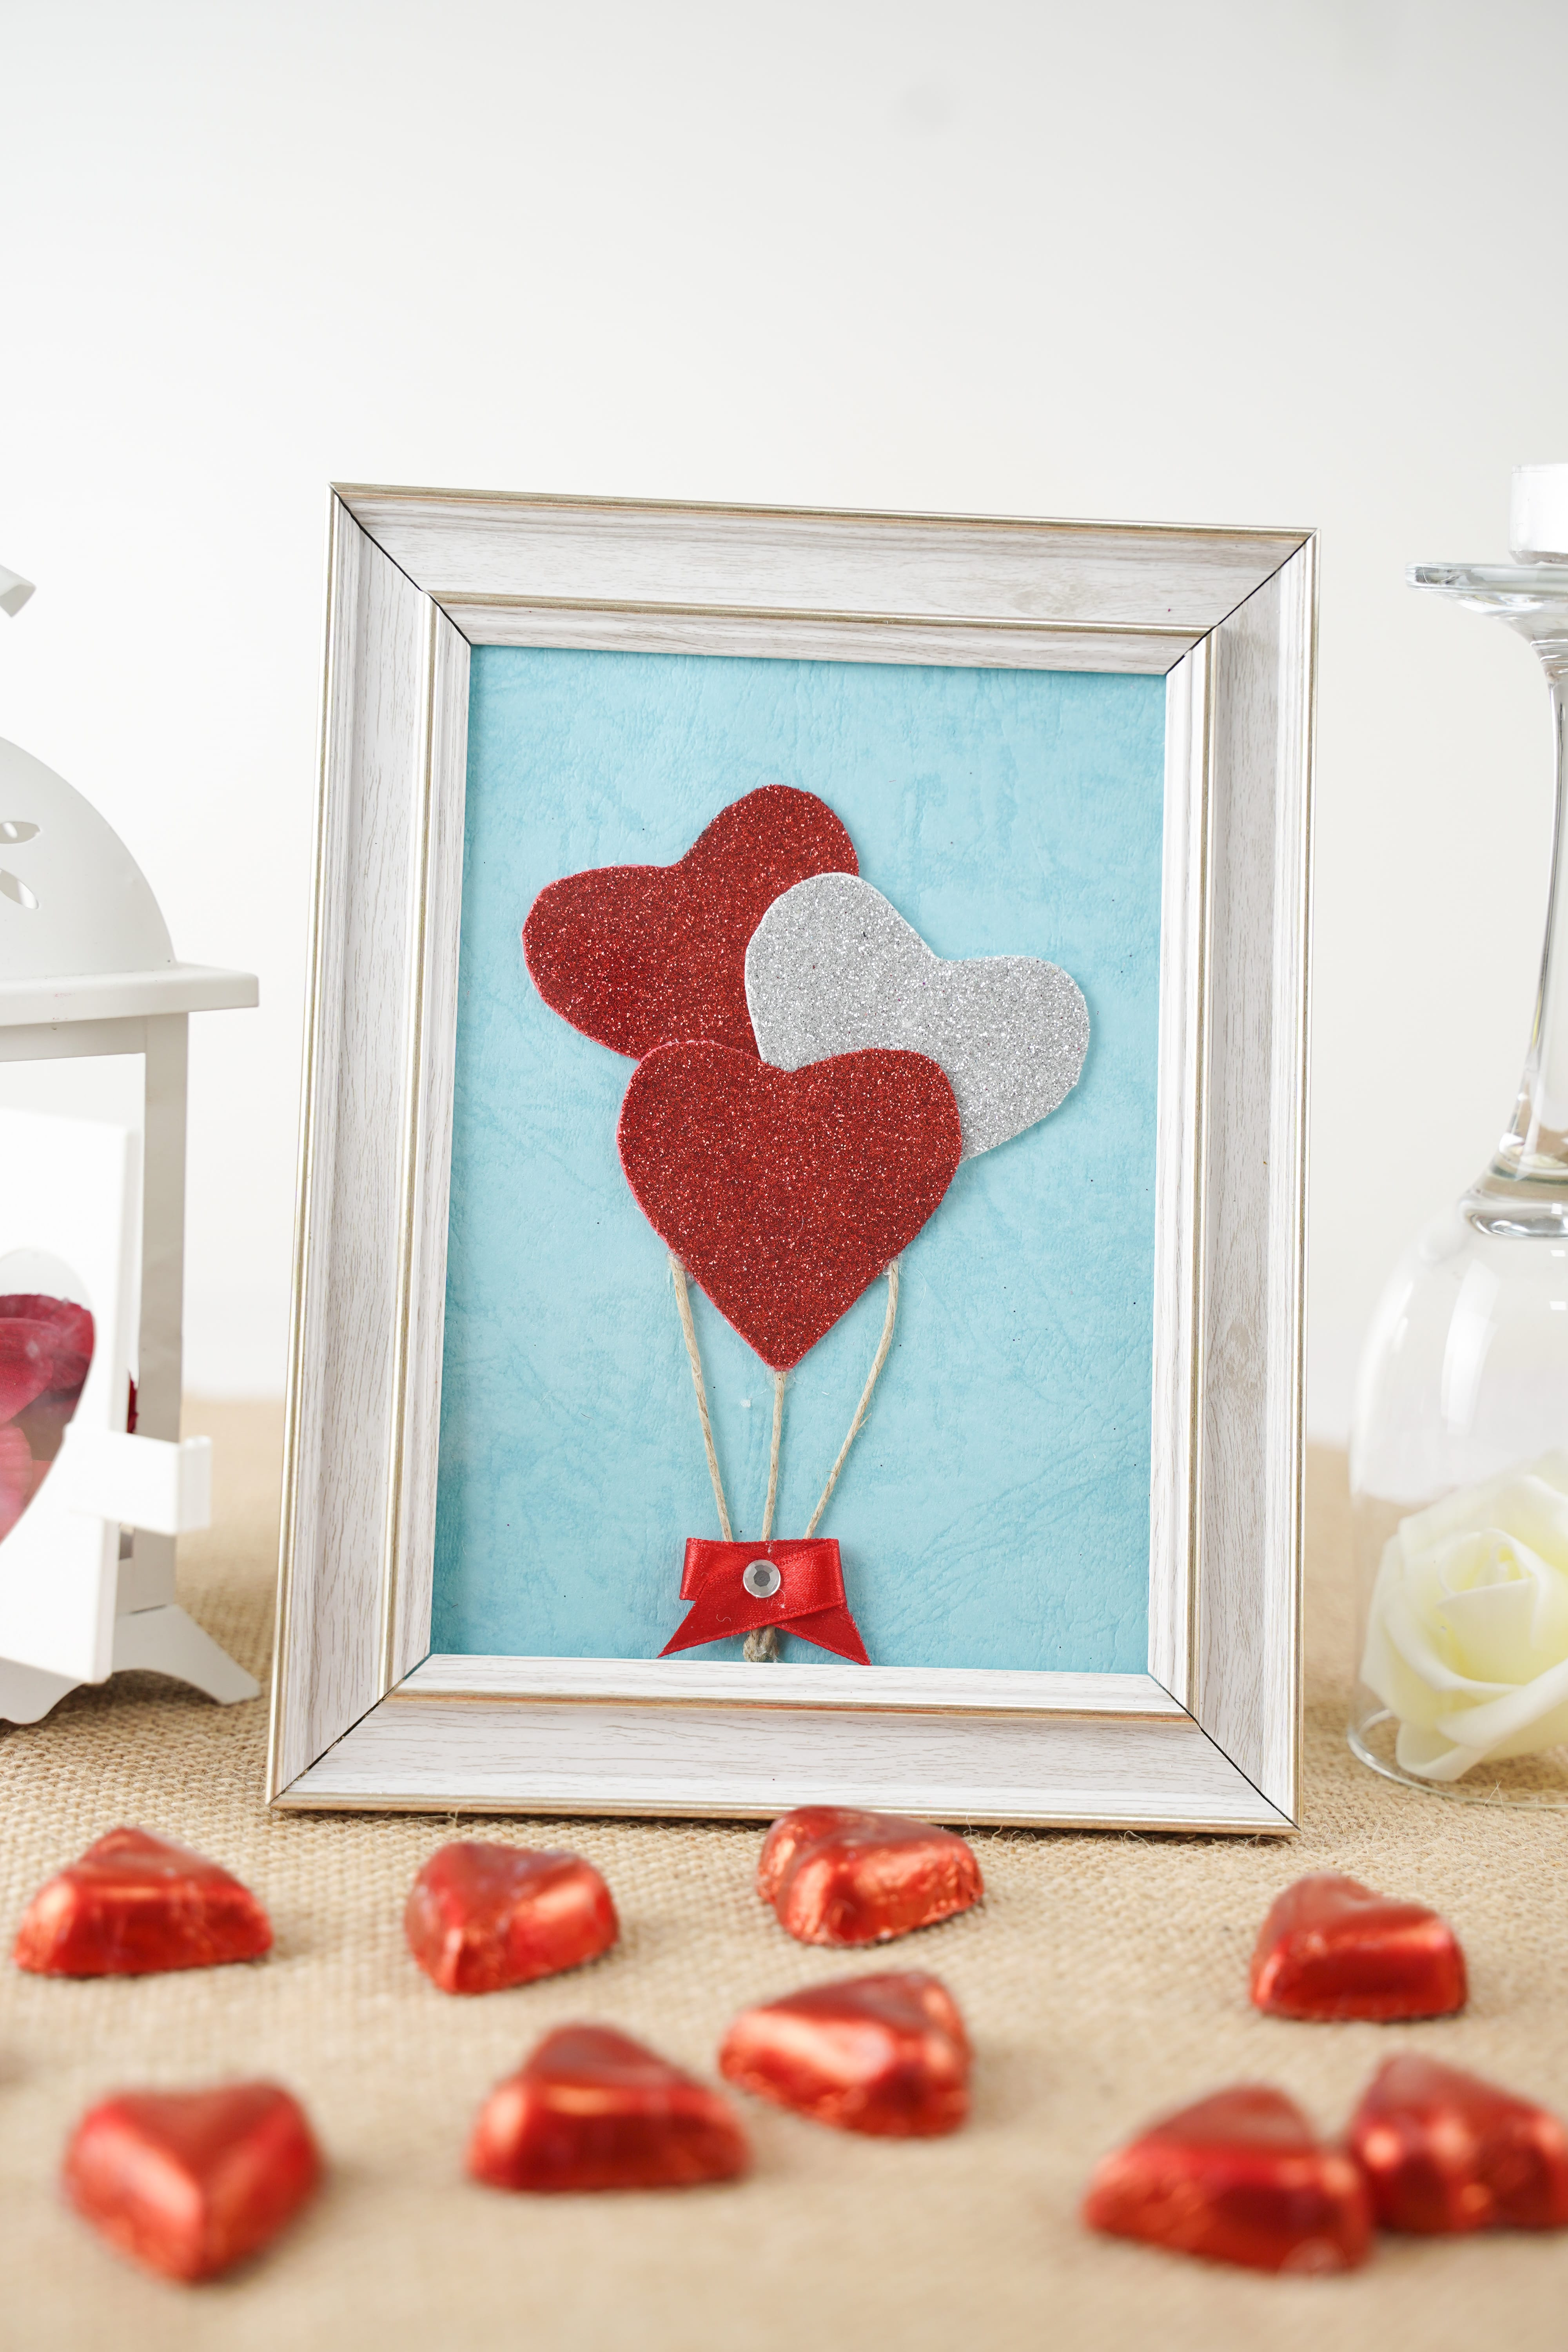 Framed hearts on table with Valentine's Day decorations